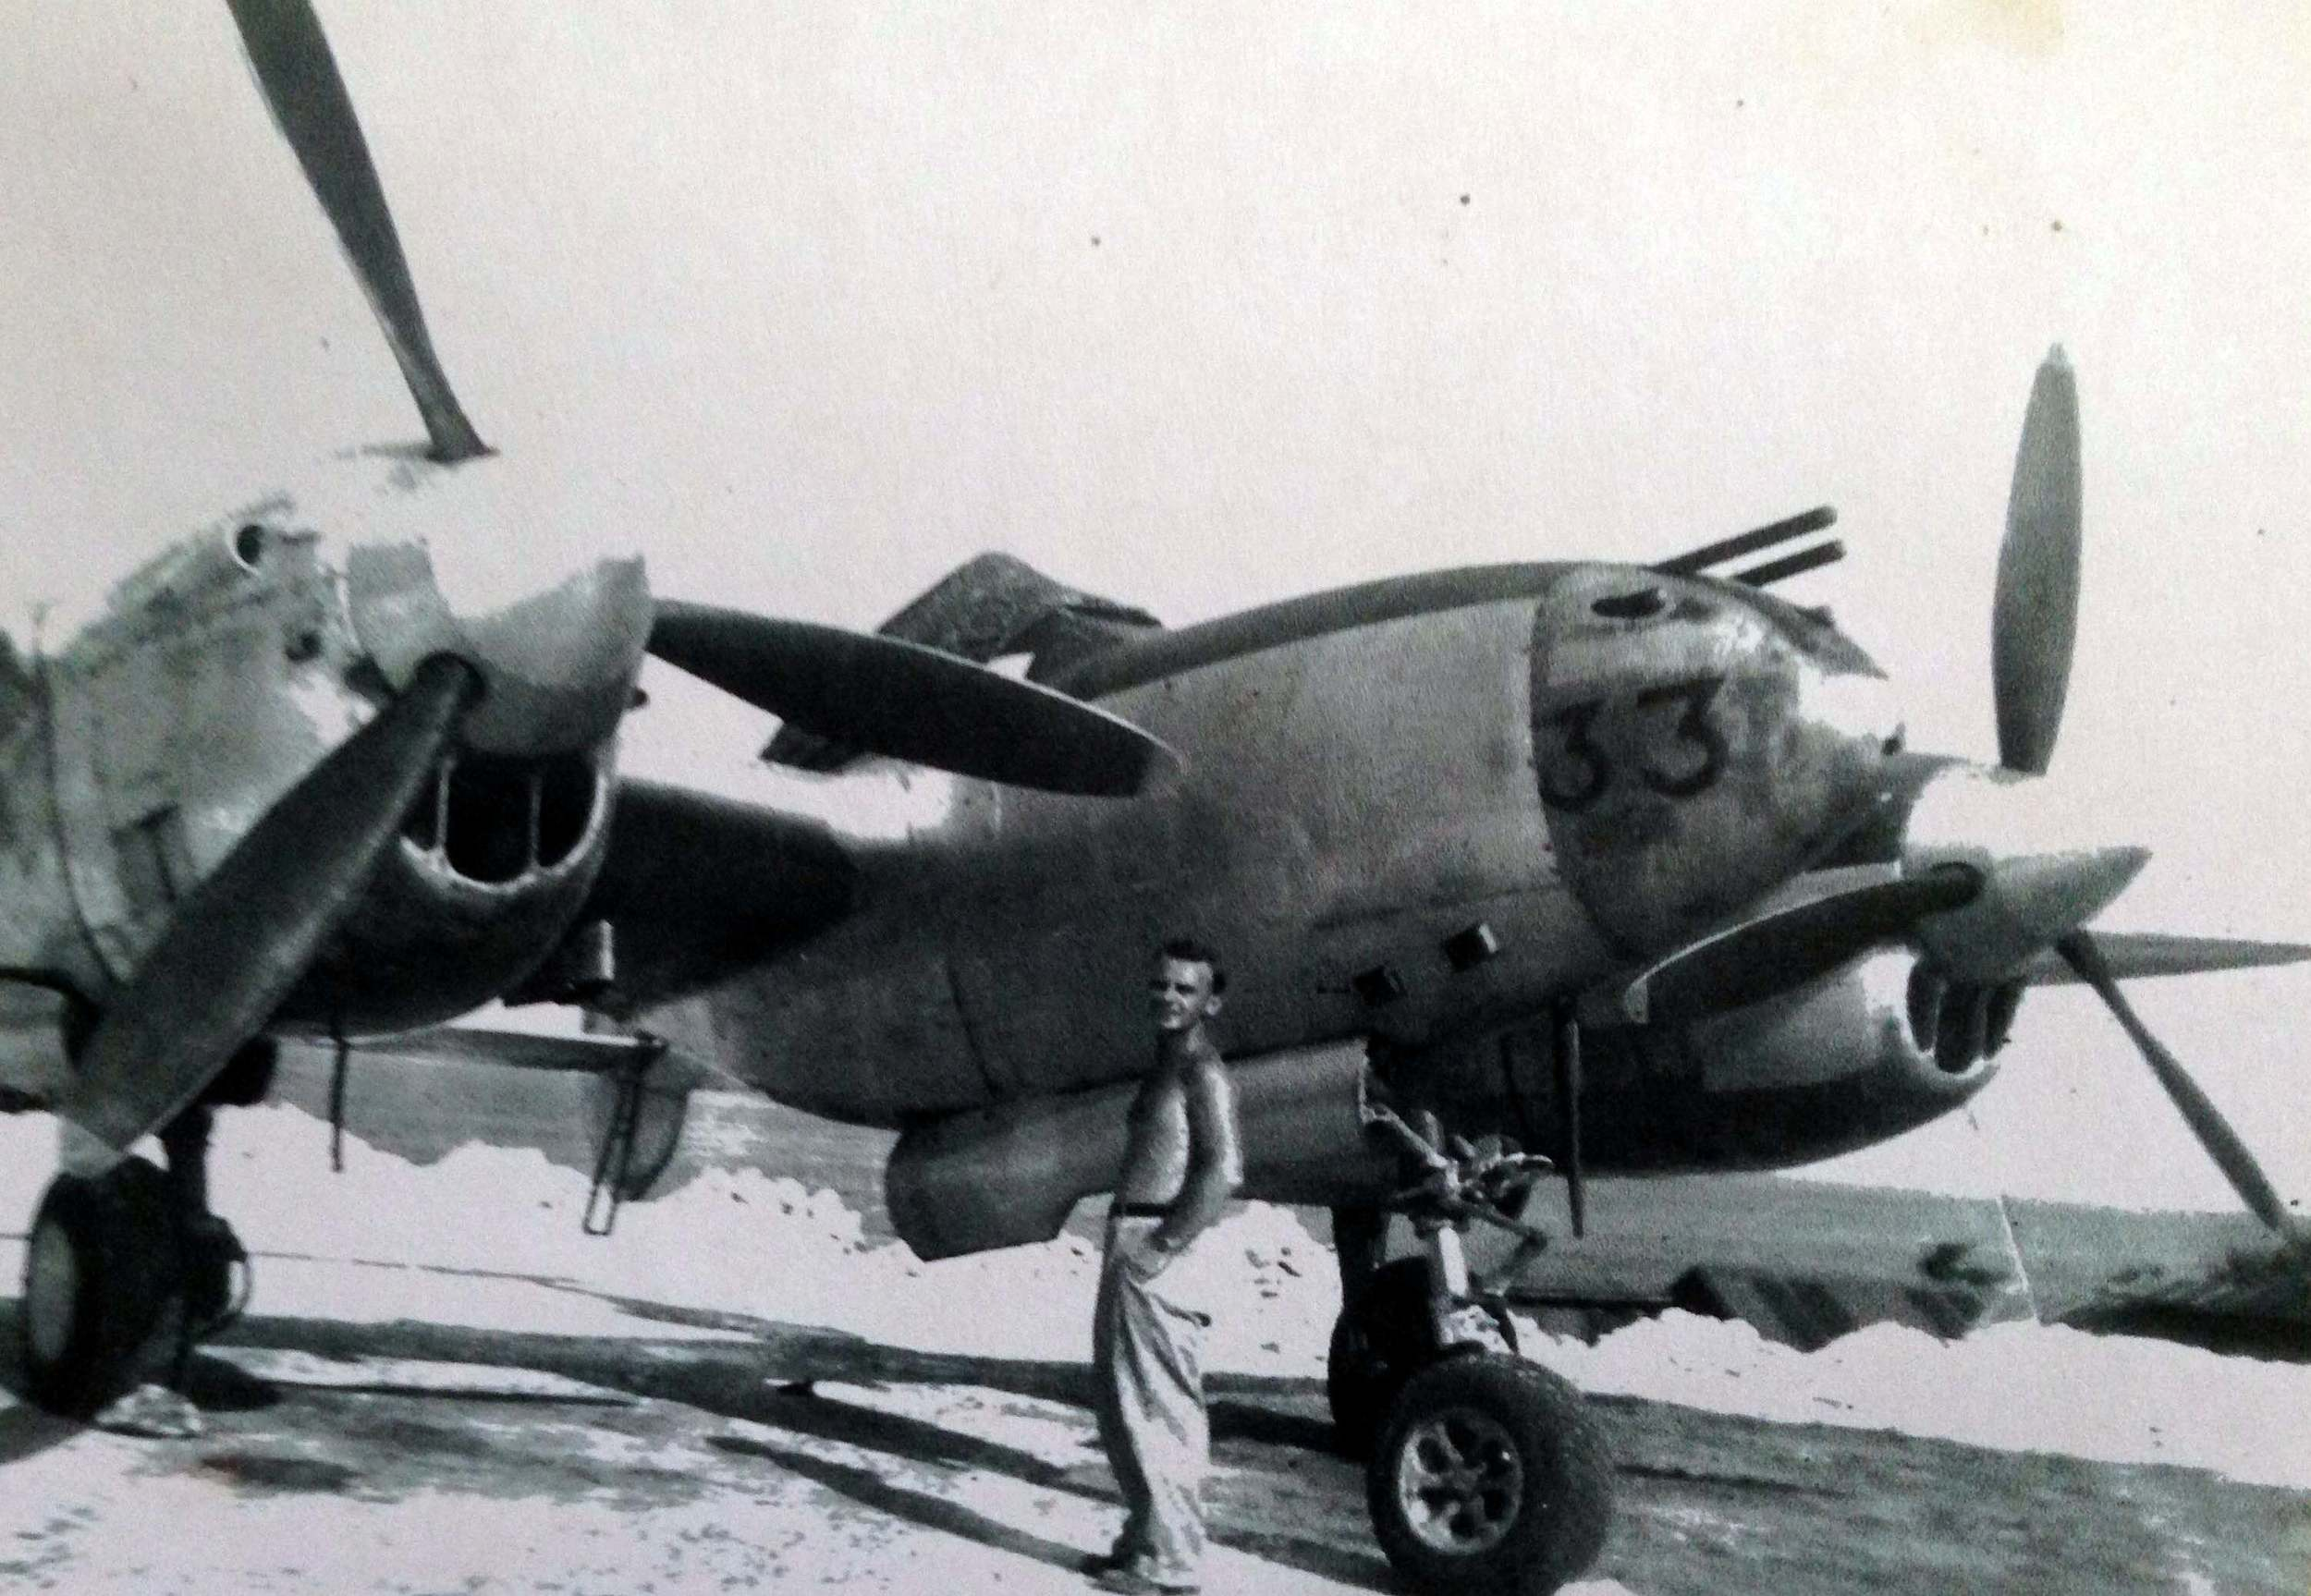 Jack with a P-38 warplane. When the US introduced these new powerful engines, the Japanese thought the US was so short on pilots that they had one pilot flying 2 planes at once.